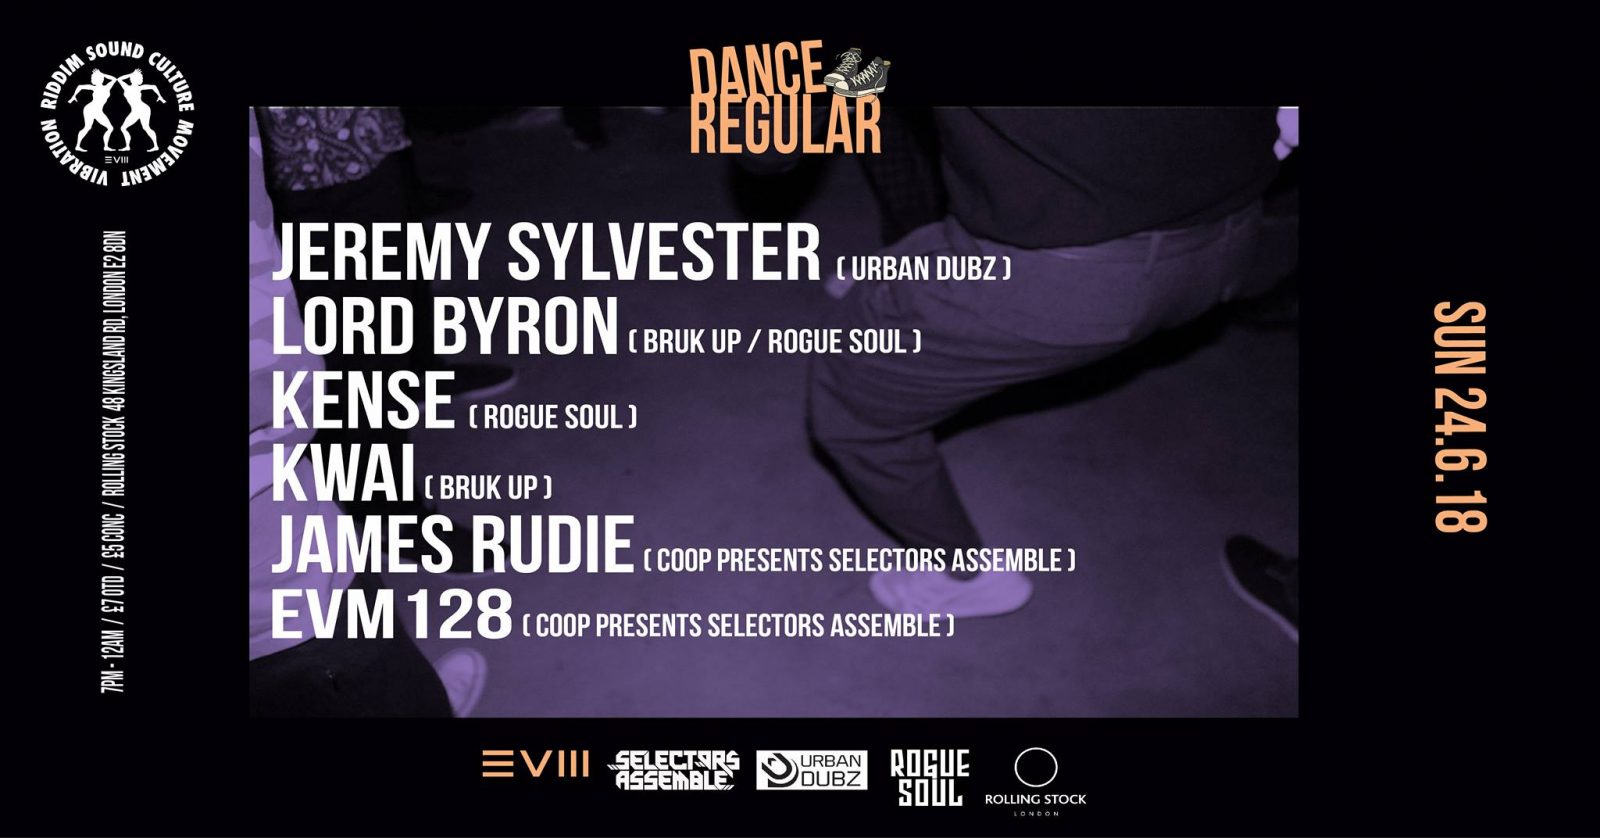 Dance Regular - Sun 24/06/18